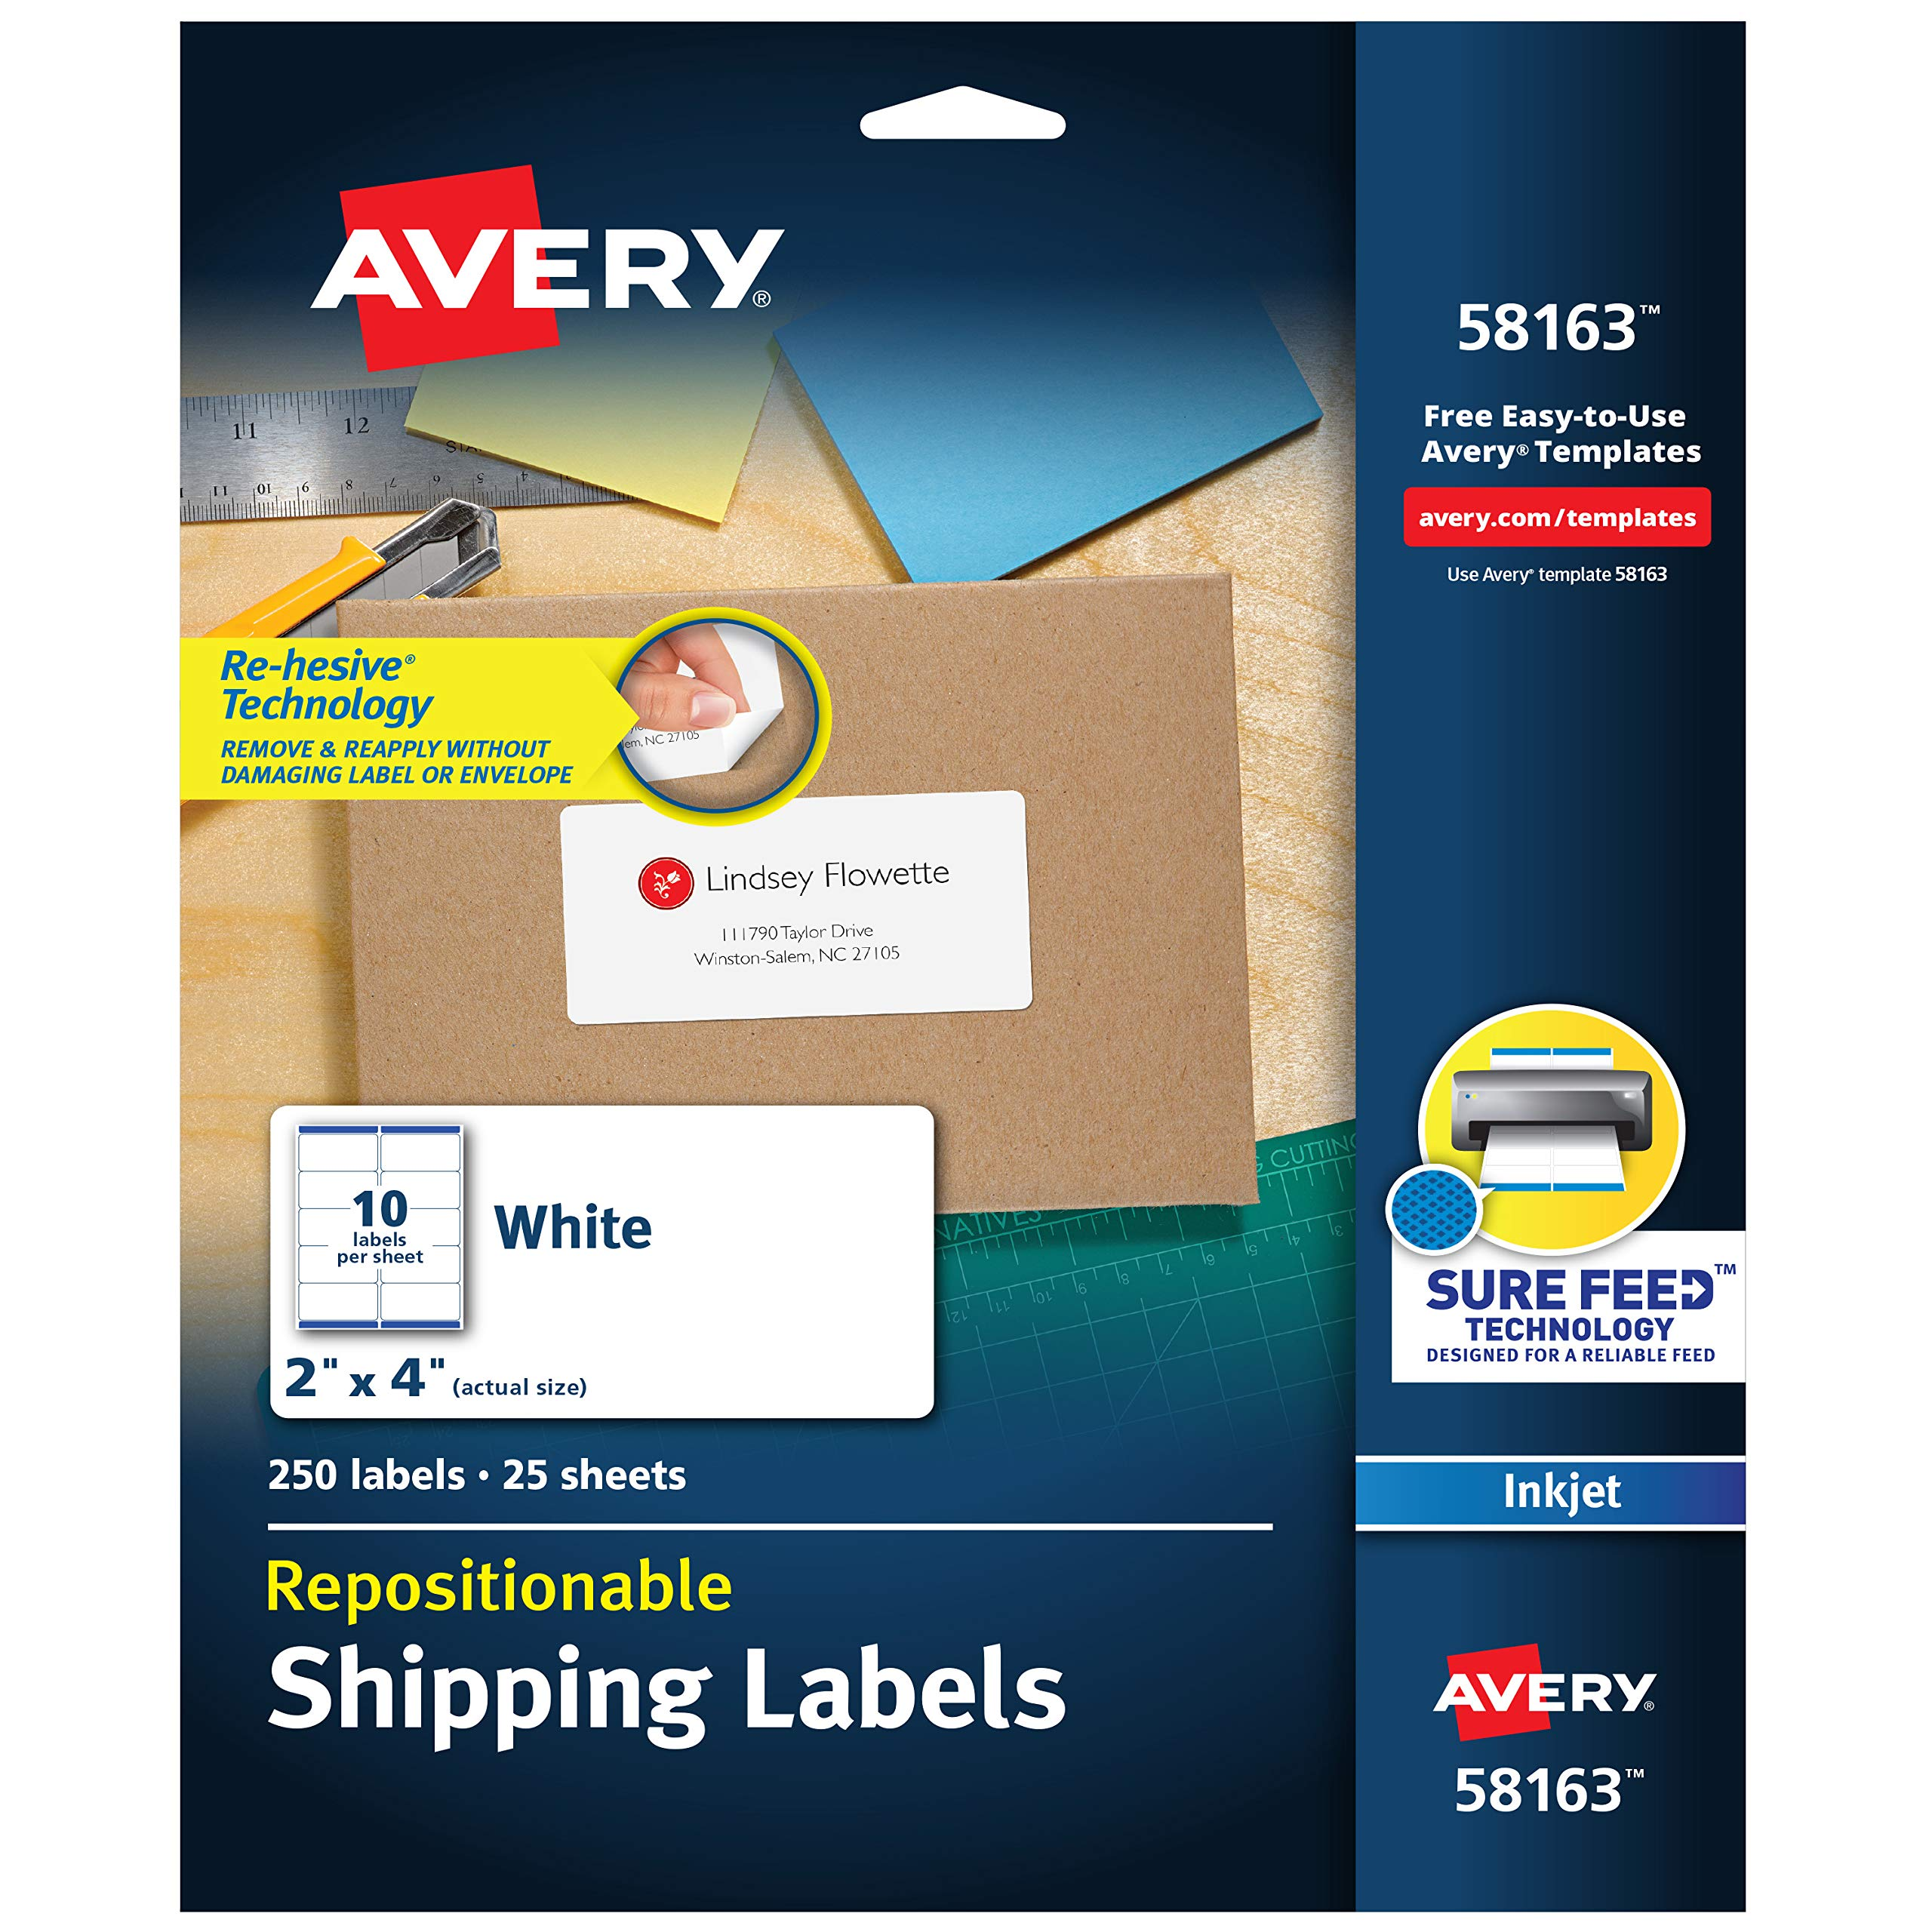 Avery Repositionable Shipping Labels for Inkjet Printers 2 x 4, Box of 250 (58163), White by Avery